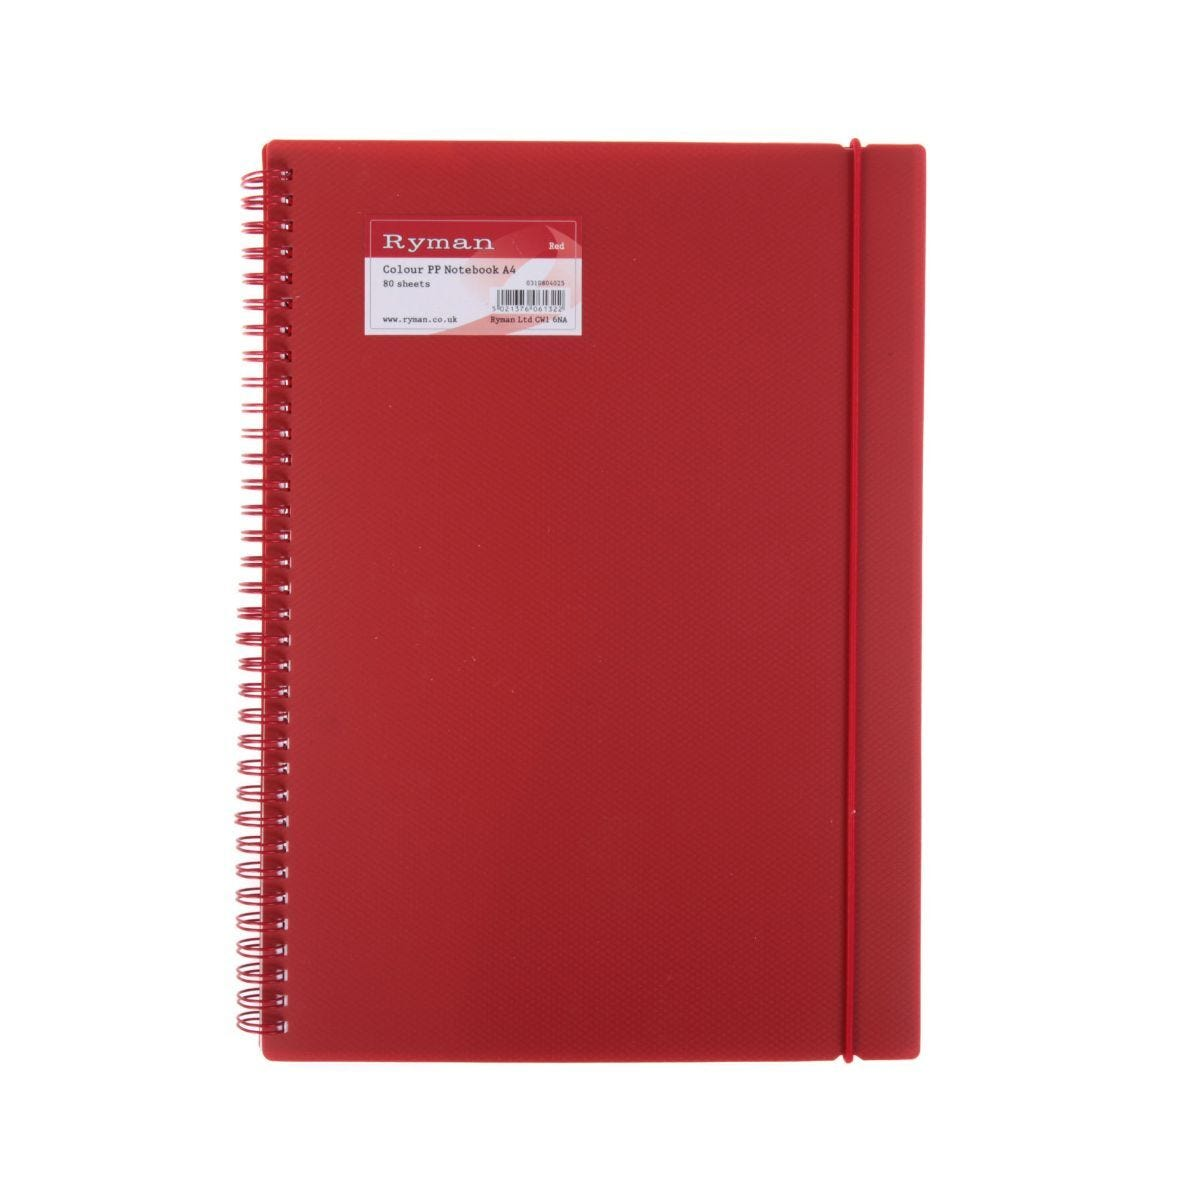 Ryman Colour Polypropylene Notebook A4 160 Pages 80 Sheets Red